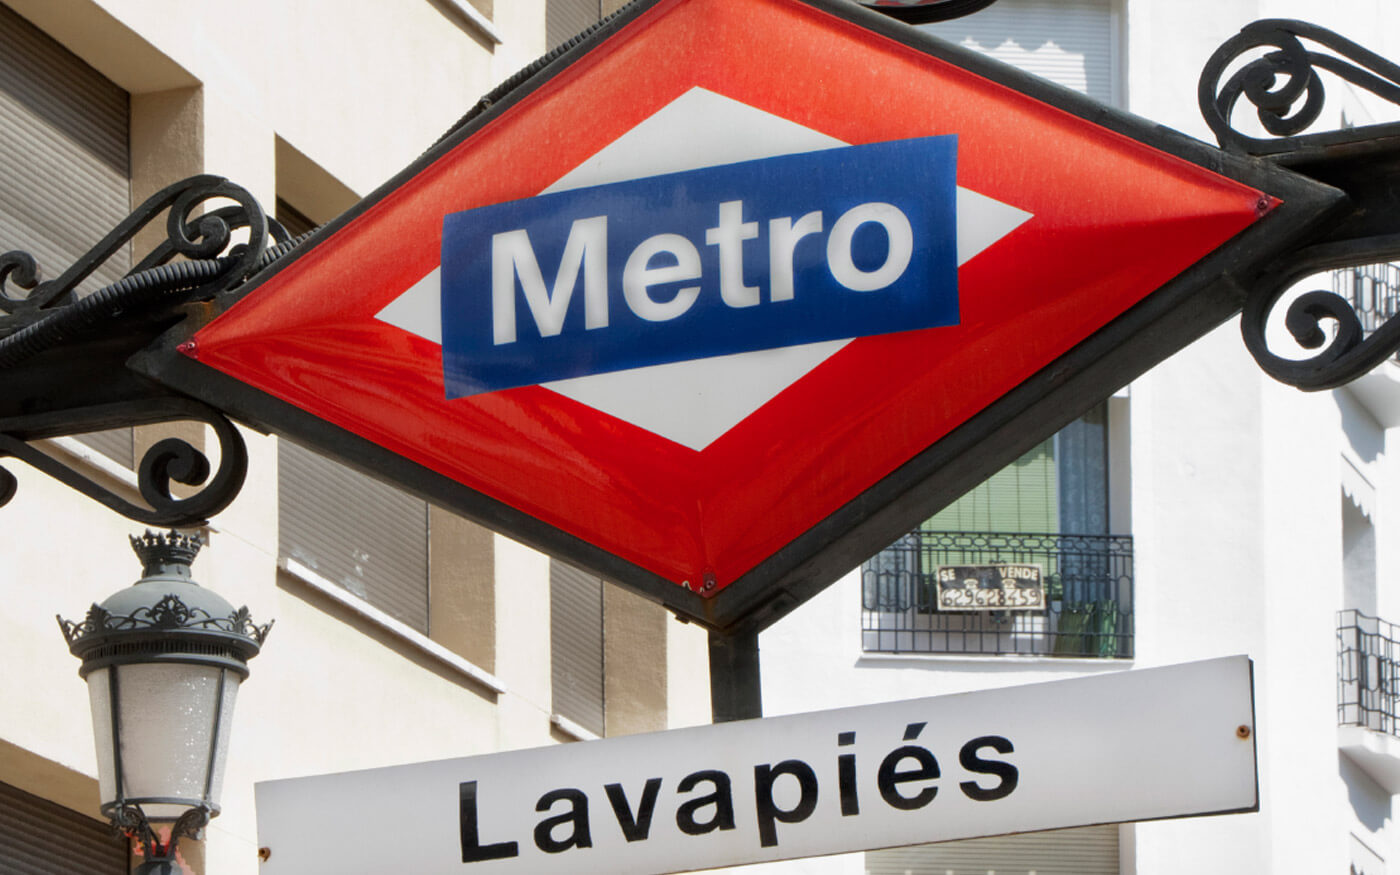 ruta-por-lavapies:-el-barrio-alternativo-de-madrid